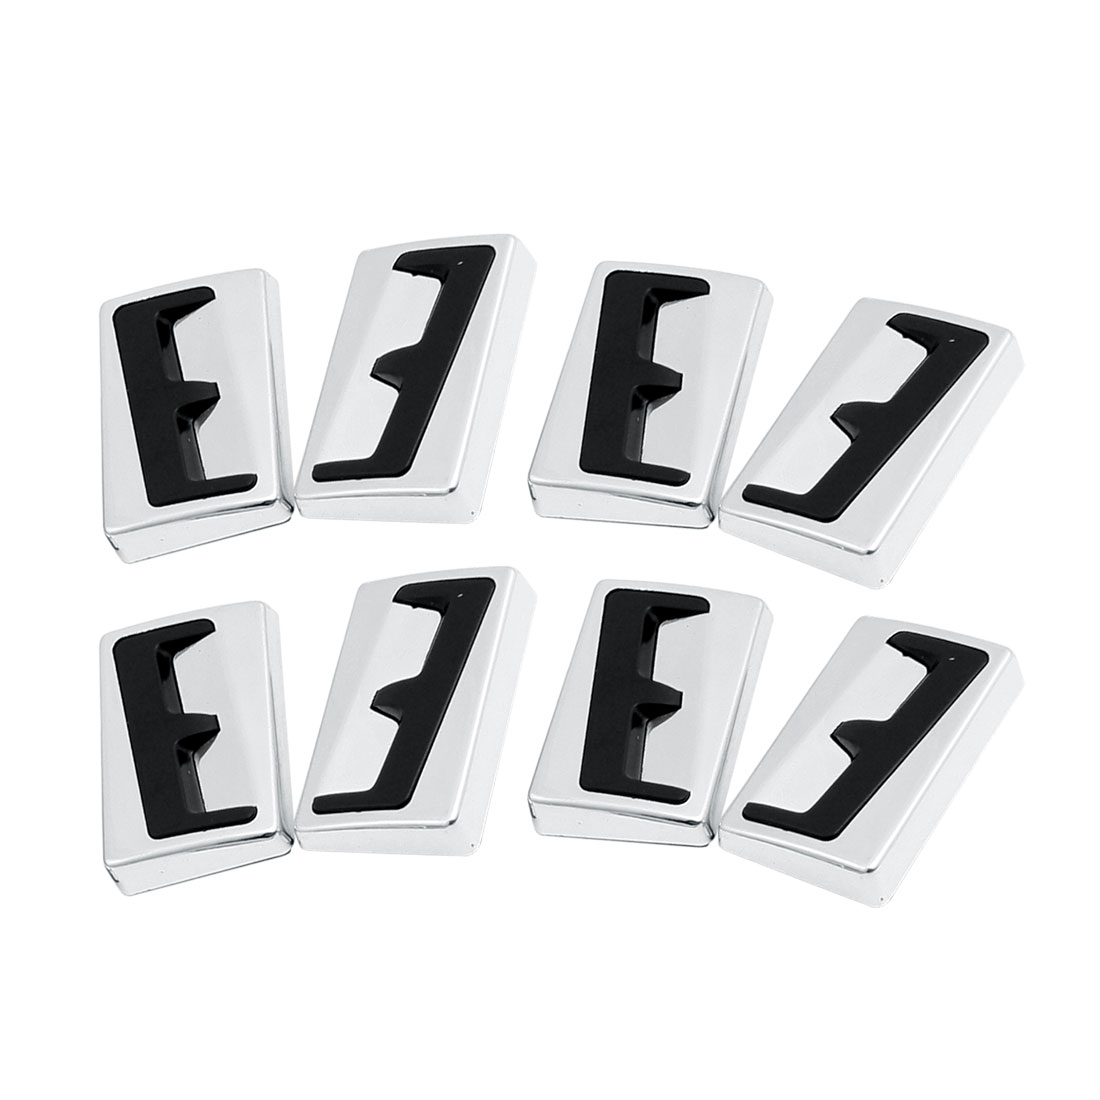 8 Pcs Adhesive Auto Car Door Bumper Guard Sticker Silver Tone Black